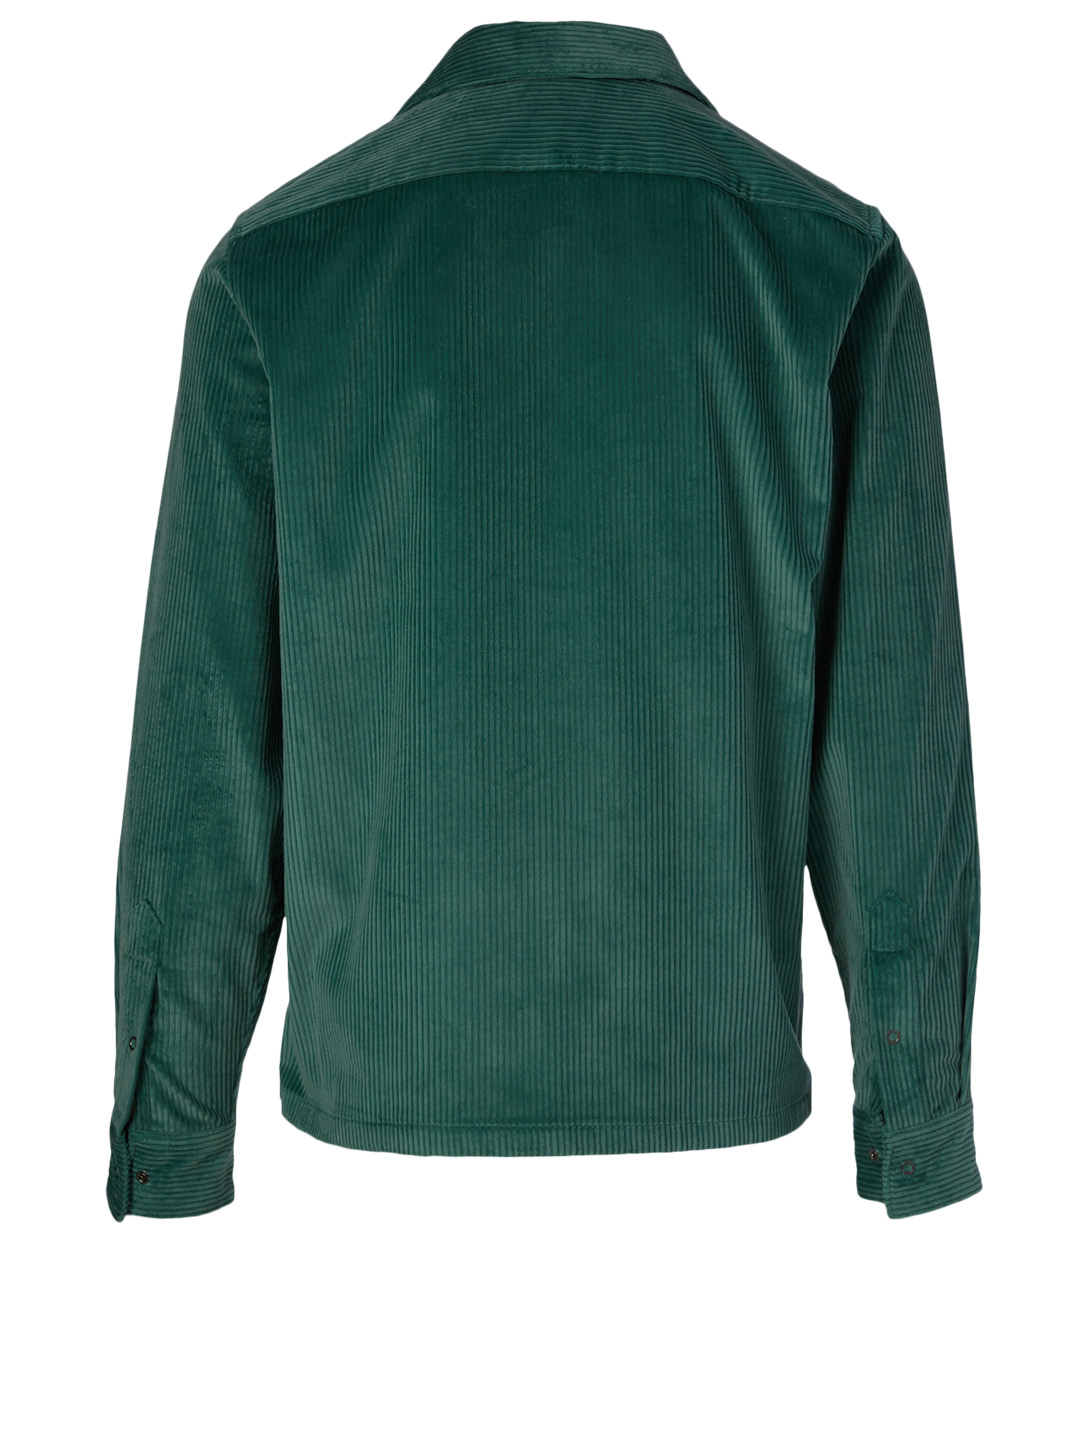 ACNE STUDIOS Corduroy Shirt Men's Green